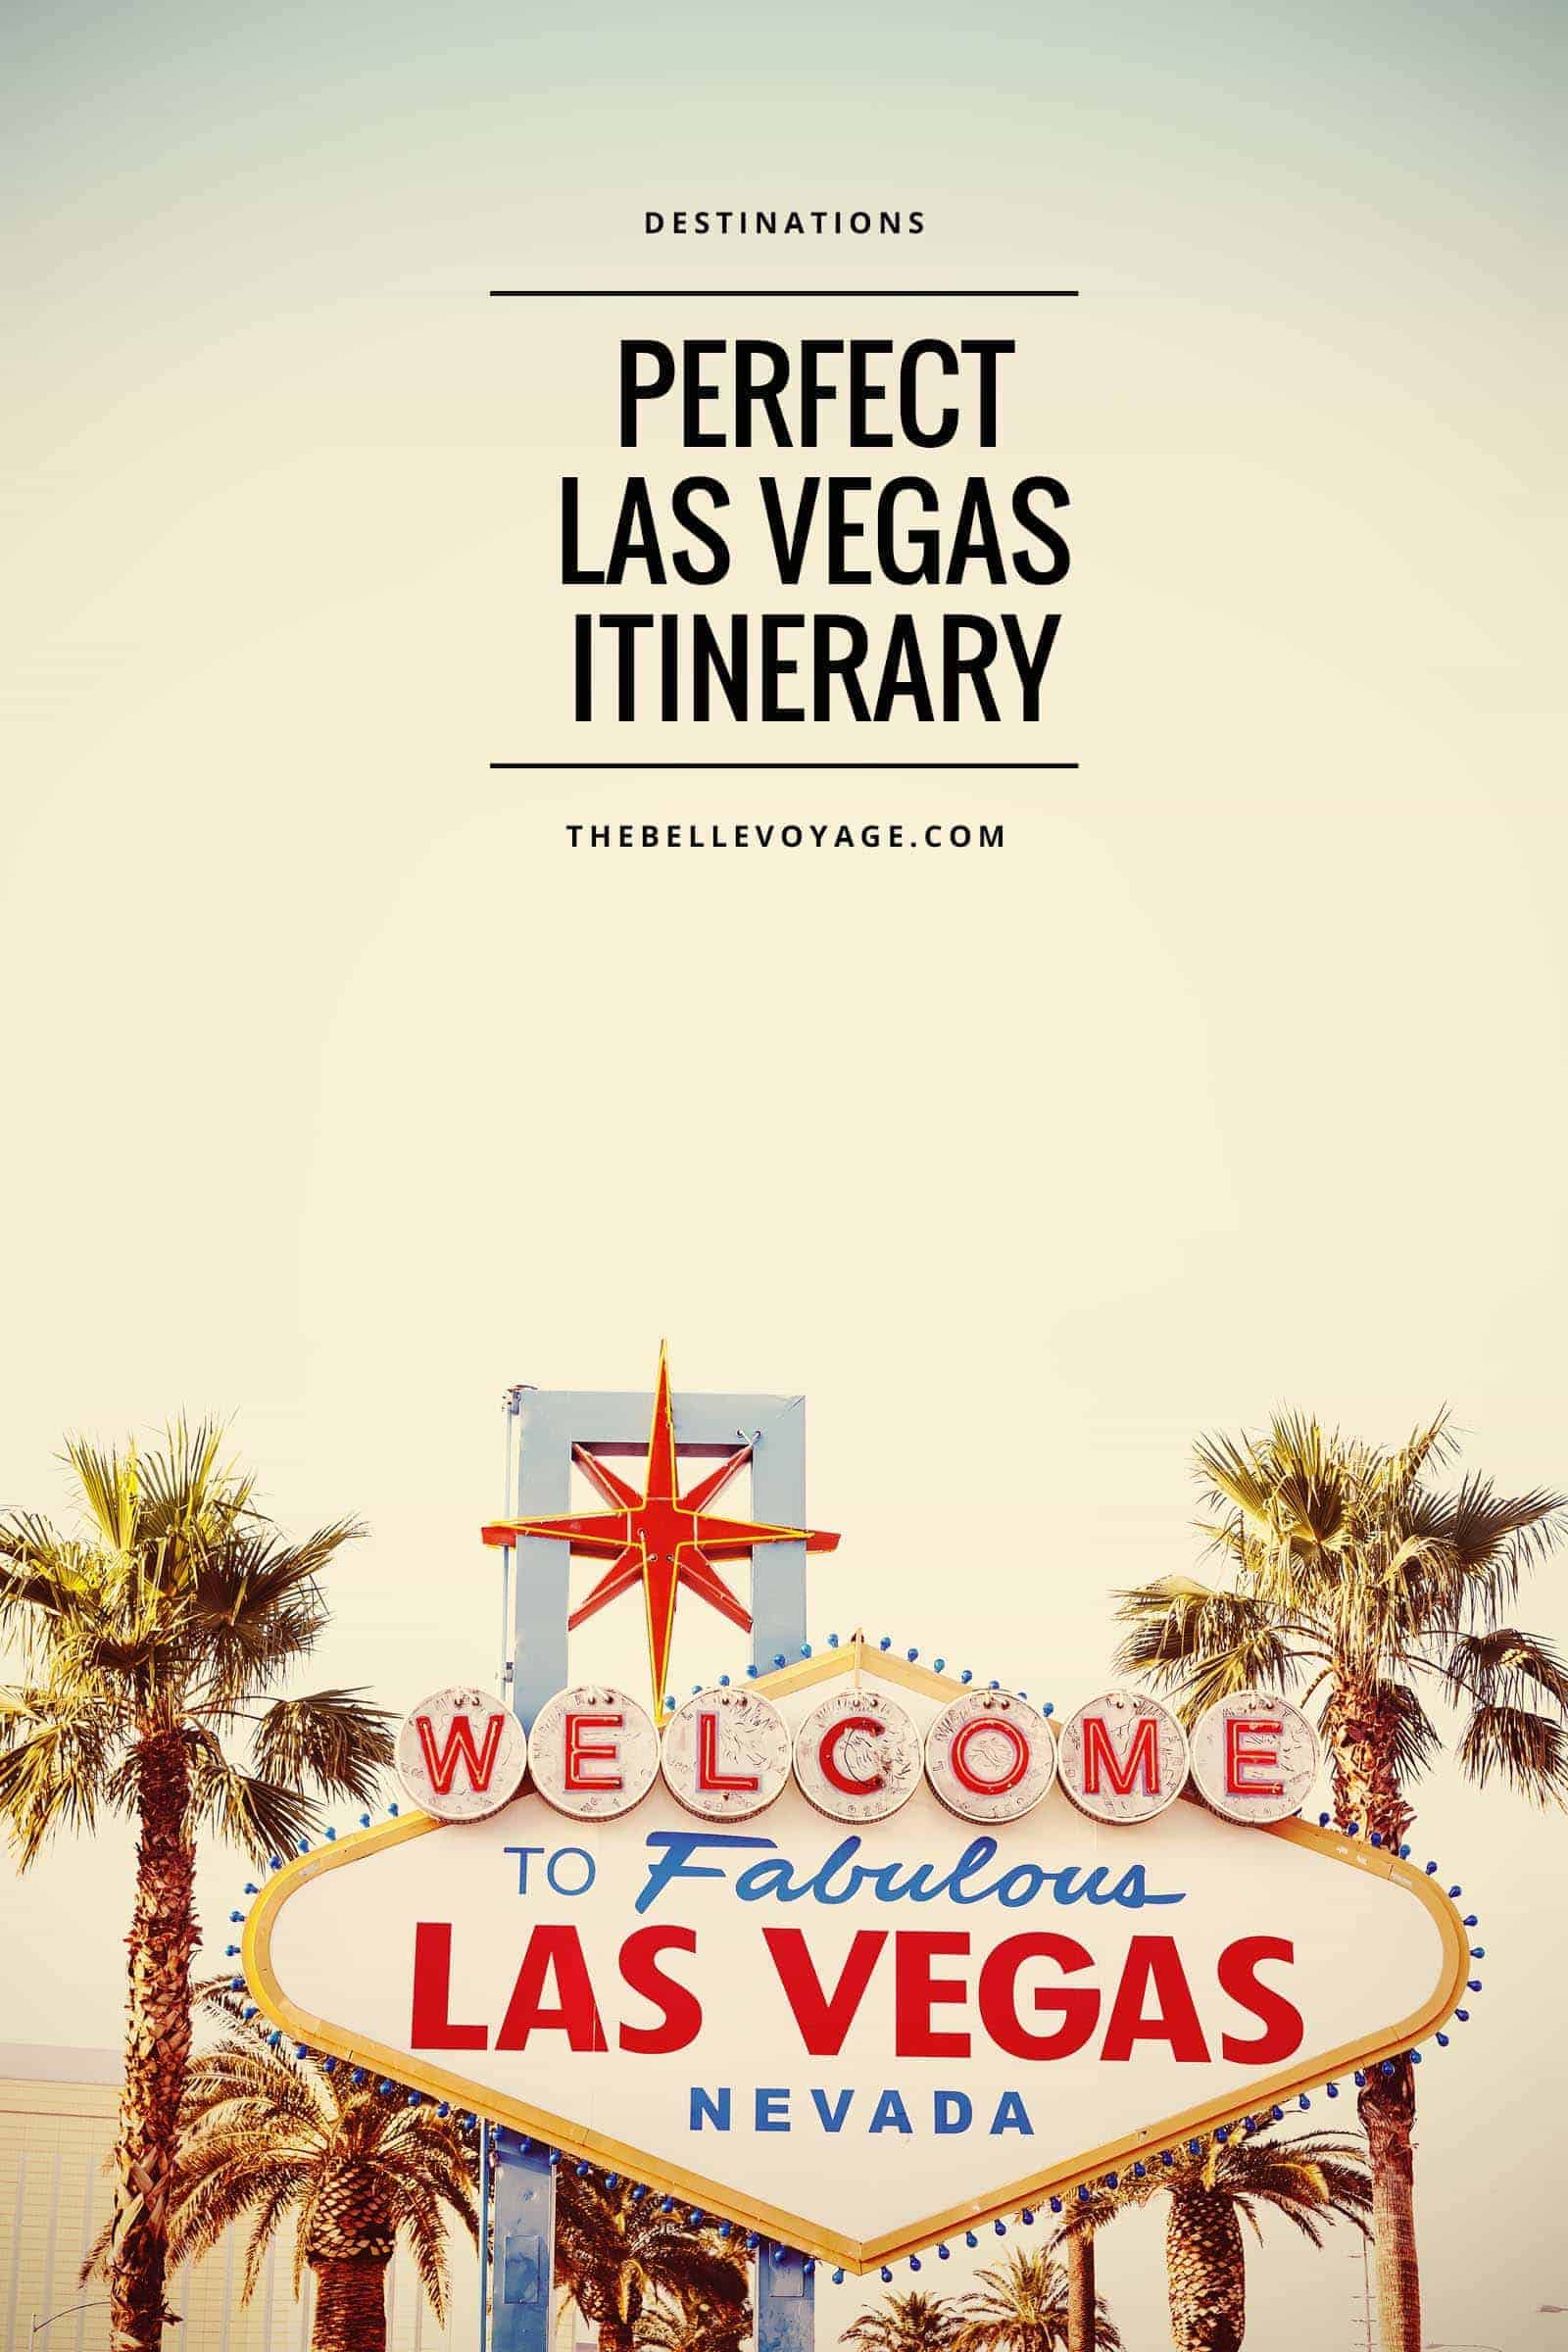 Las Vegas Travel: Las Vegas - The Perfect Itinerary For First-Timers